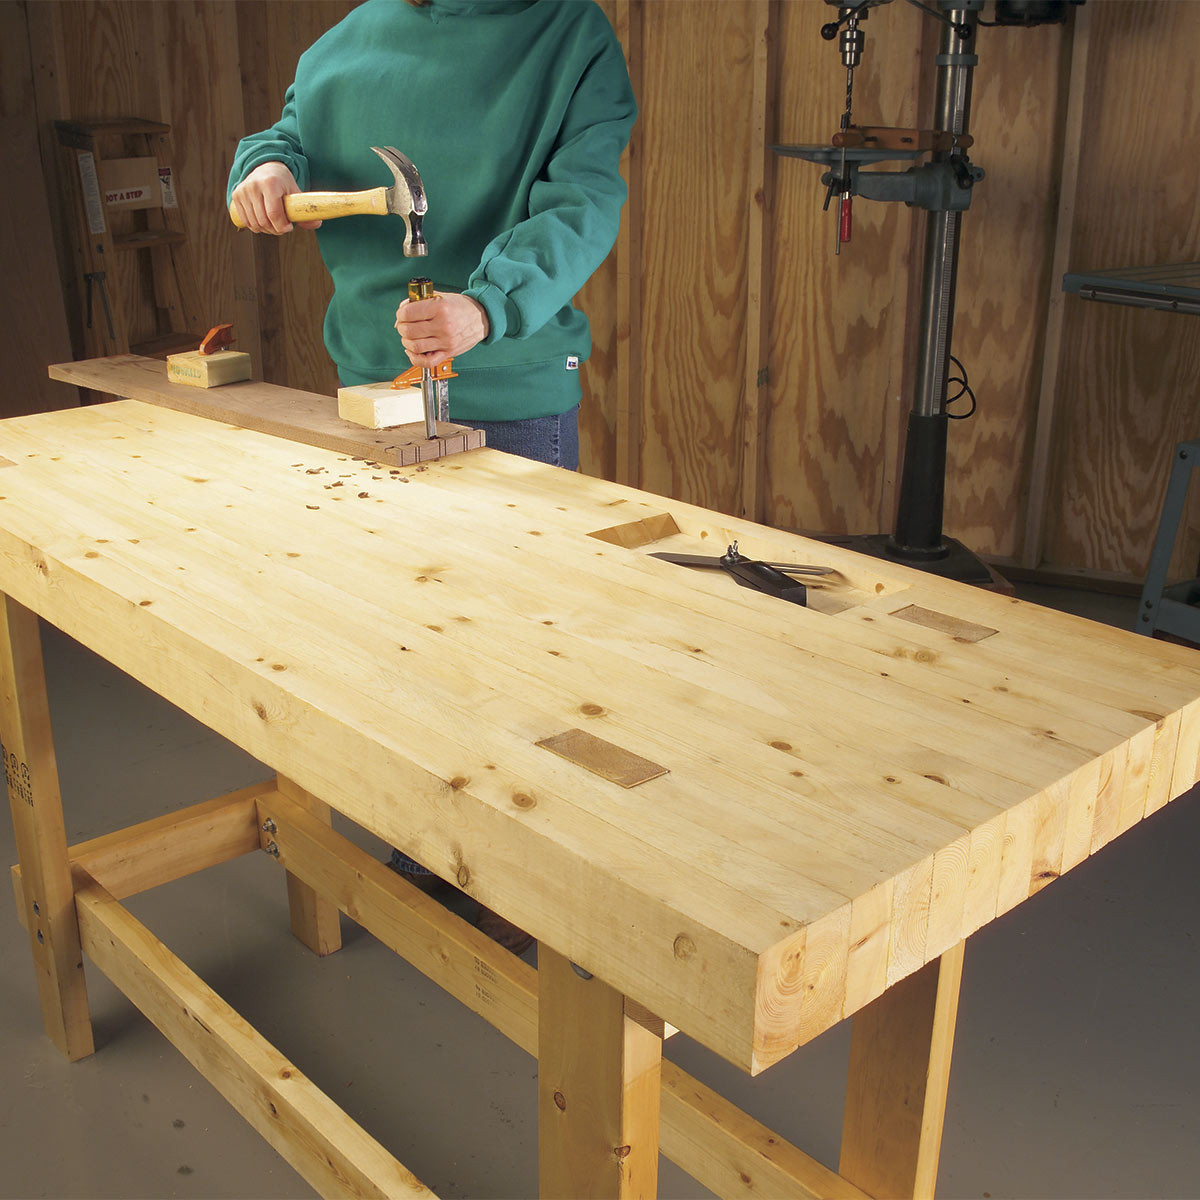 Best ideas about Workbench DIY Plans . Save or Pin 12 Super Simple Workbenches You Can Build — The Family Now.